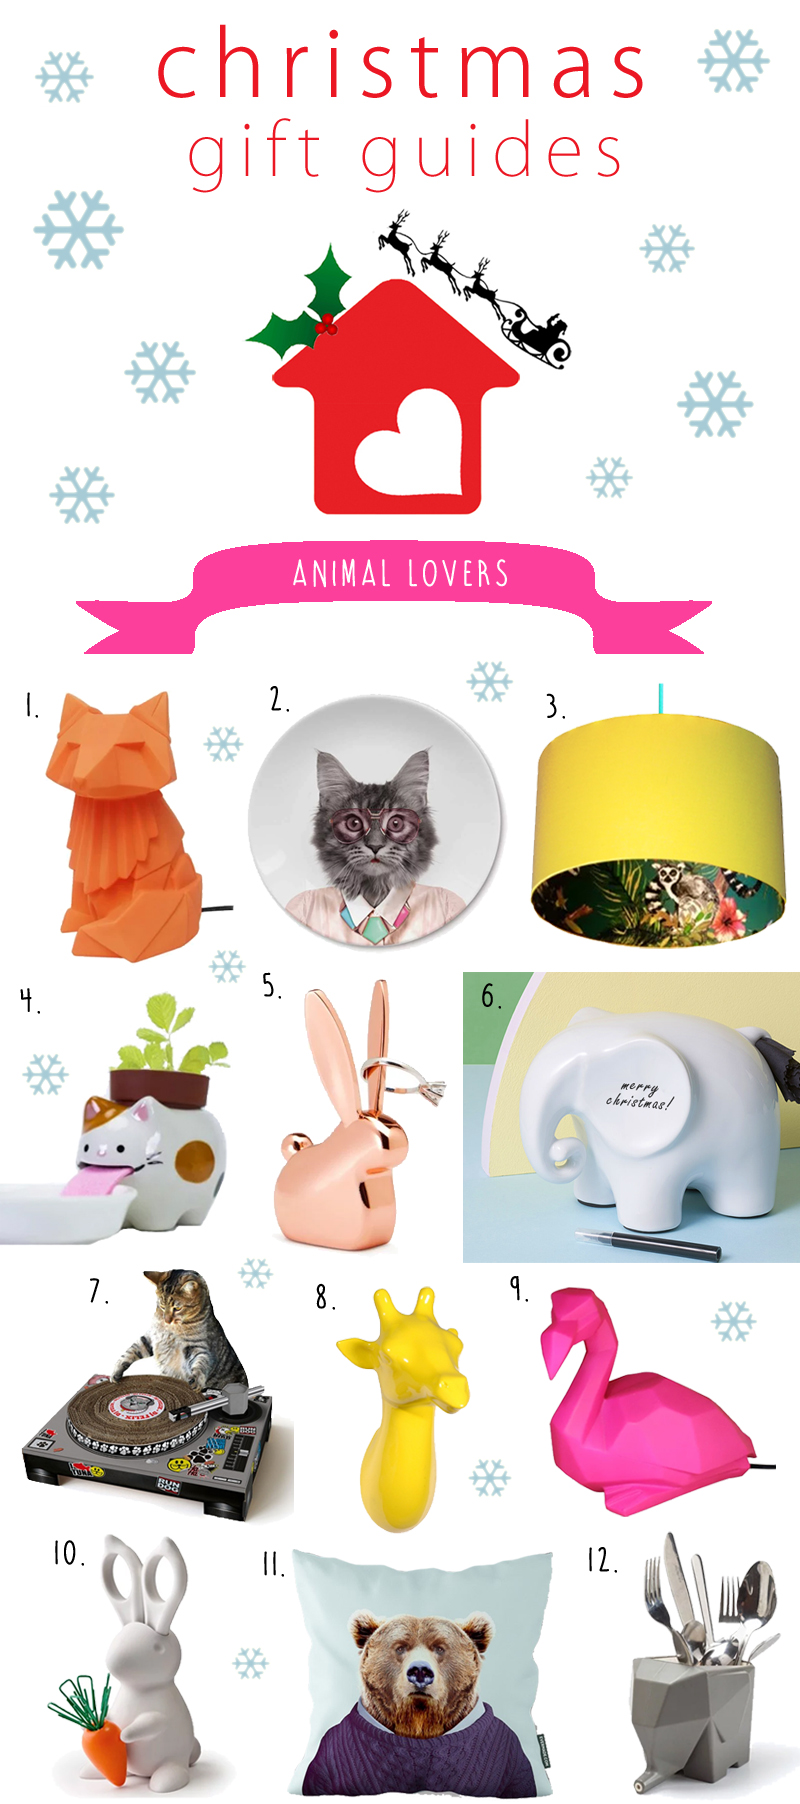 xmas-blog-gifts-animal-lovers-2017-1